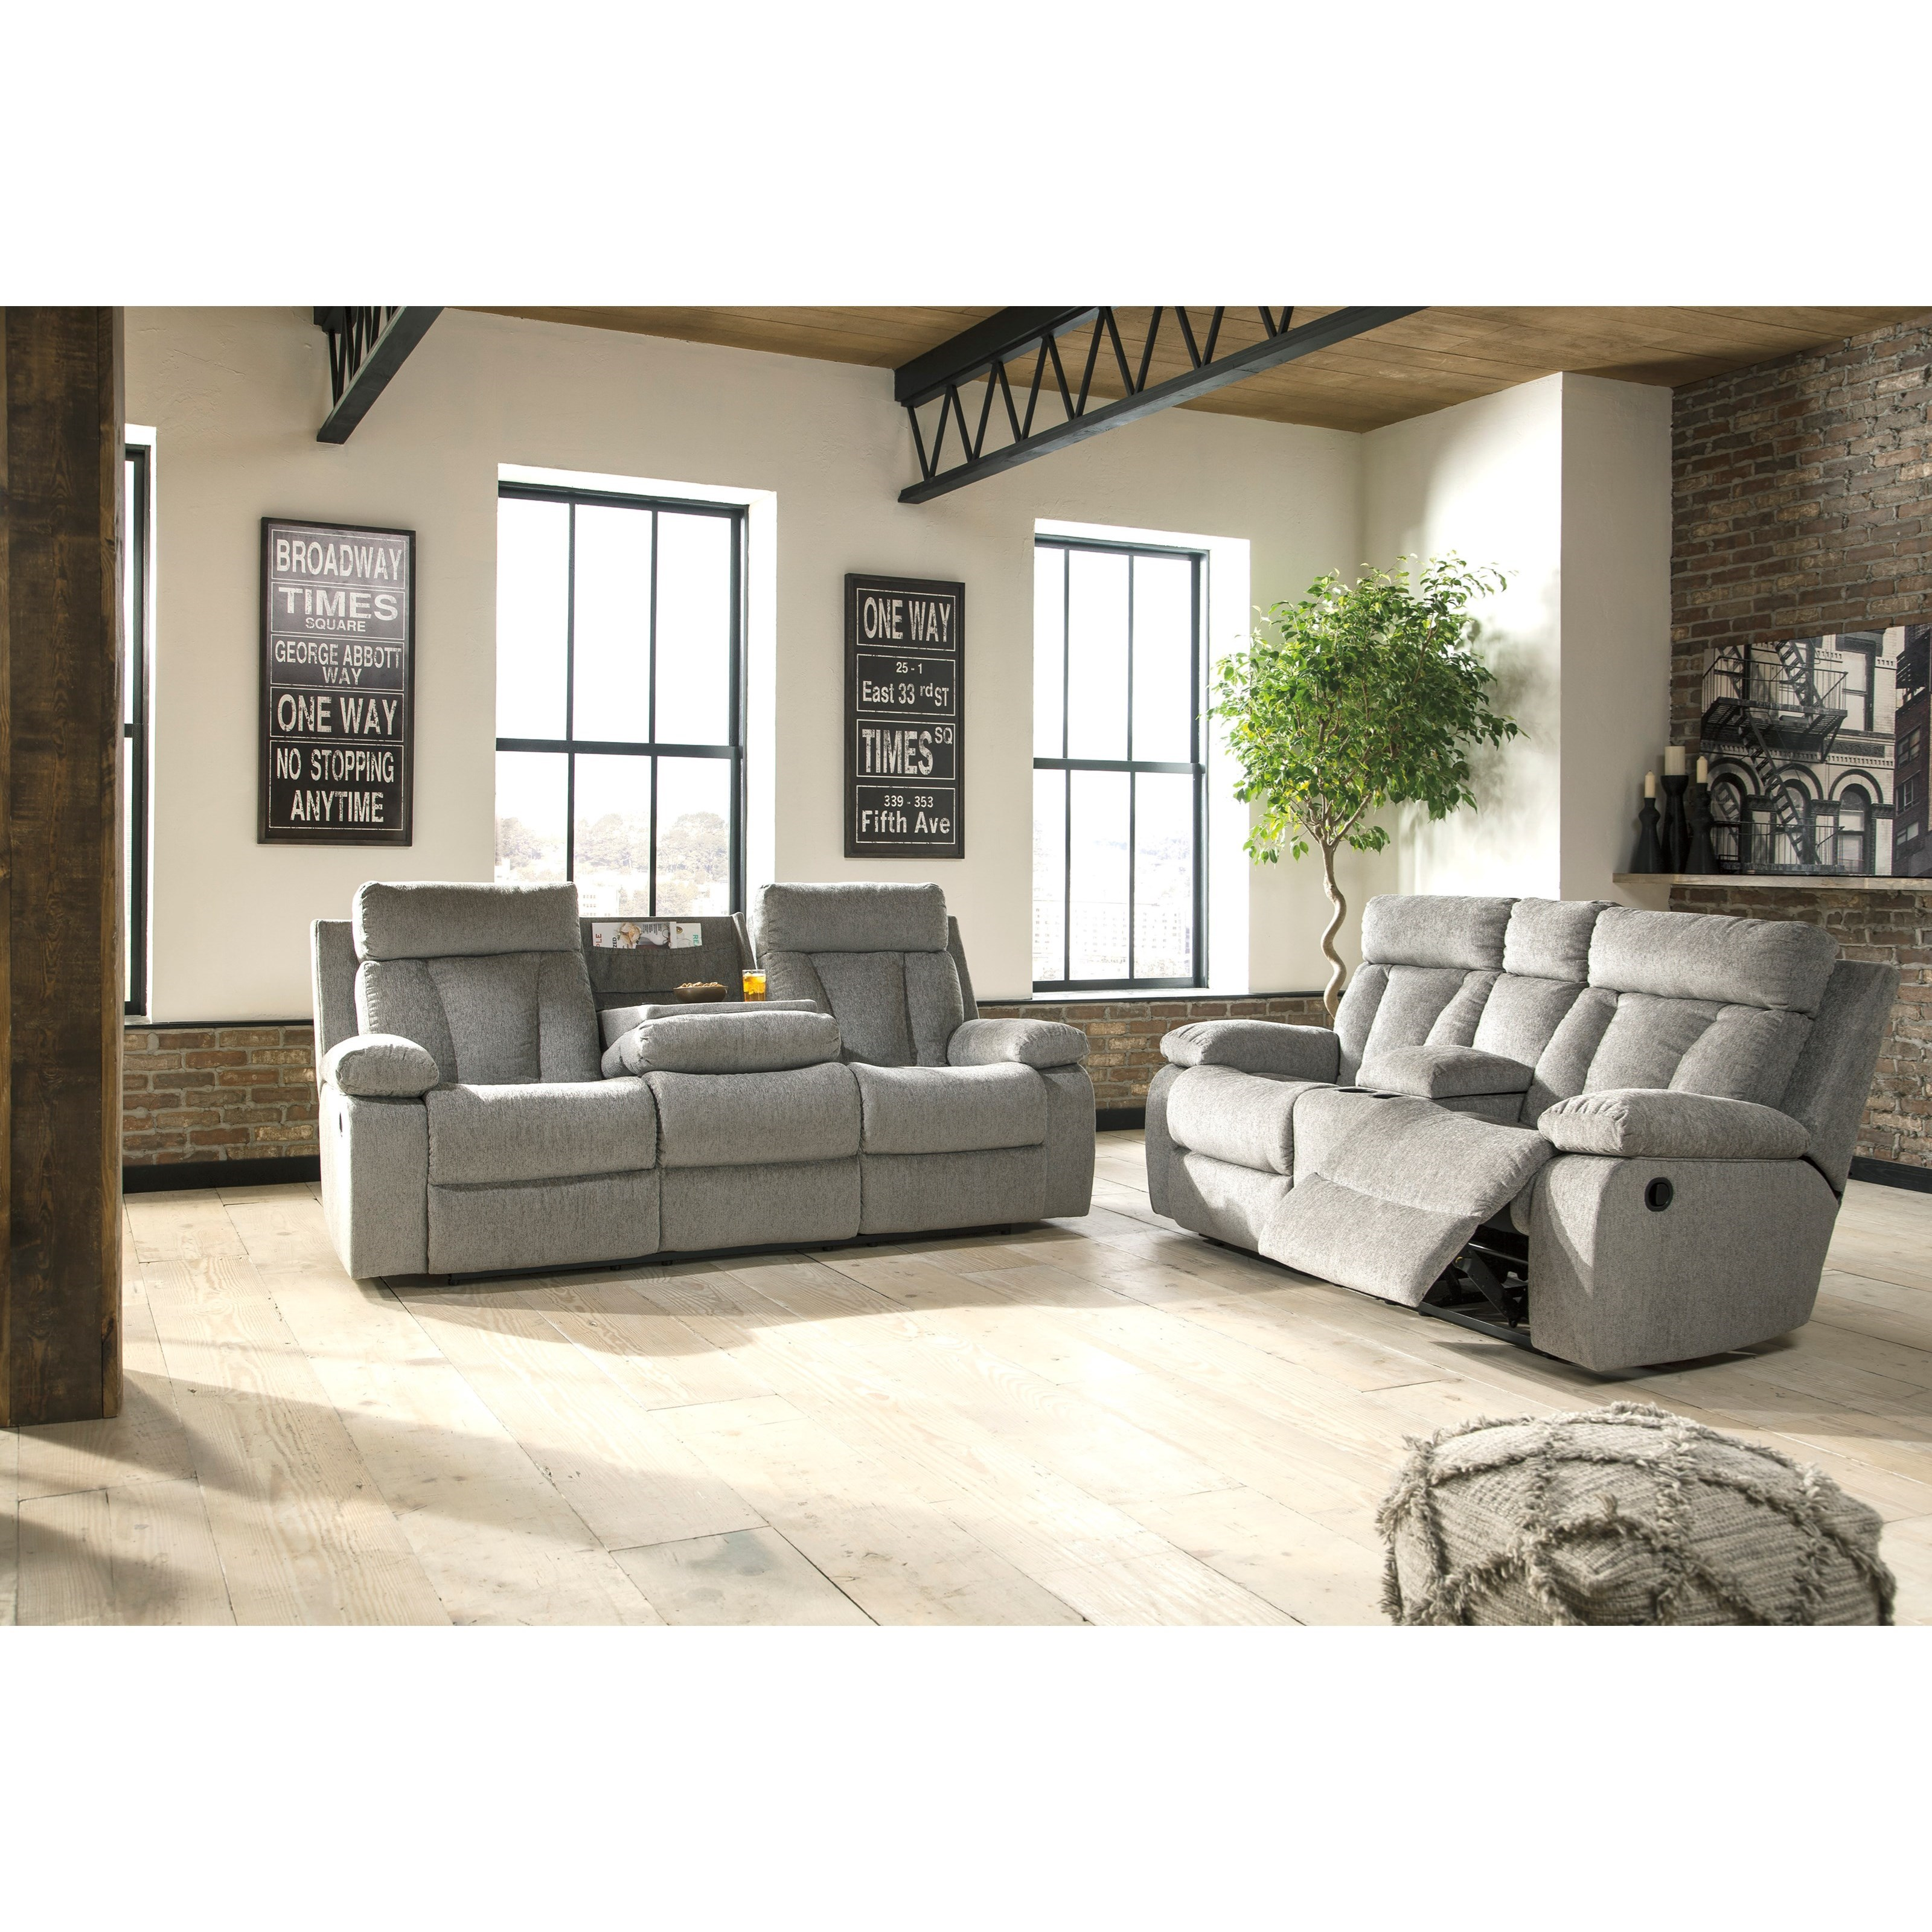 Furniture By Ashley: Signature Design By Ashley Mitchiner Reclining Living Room